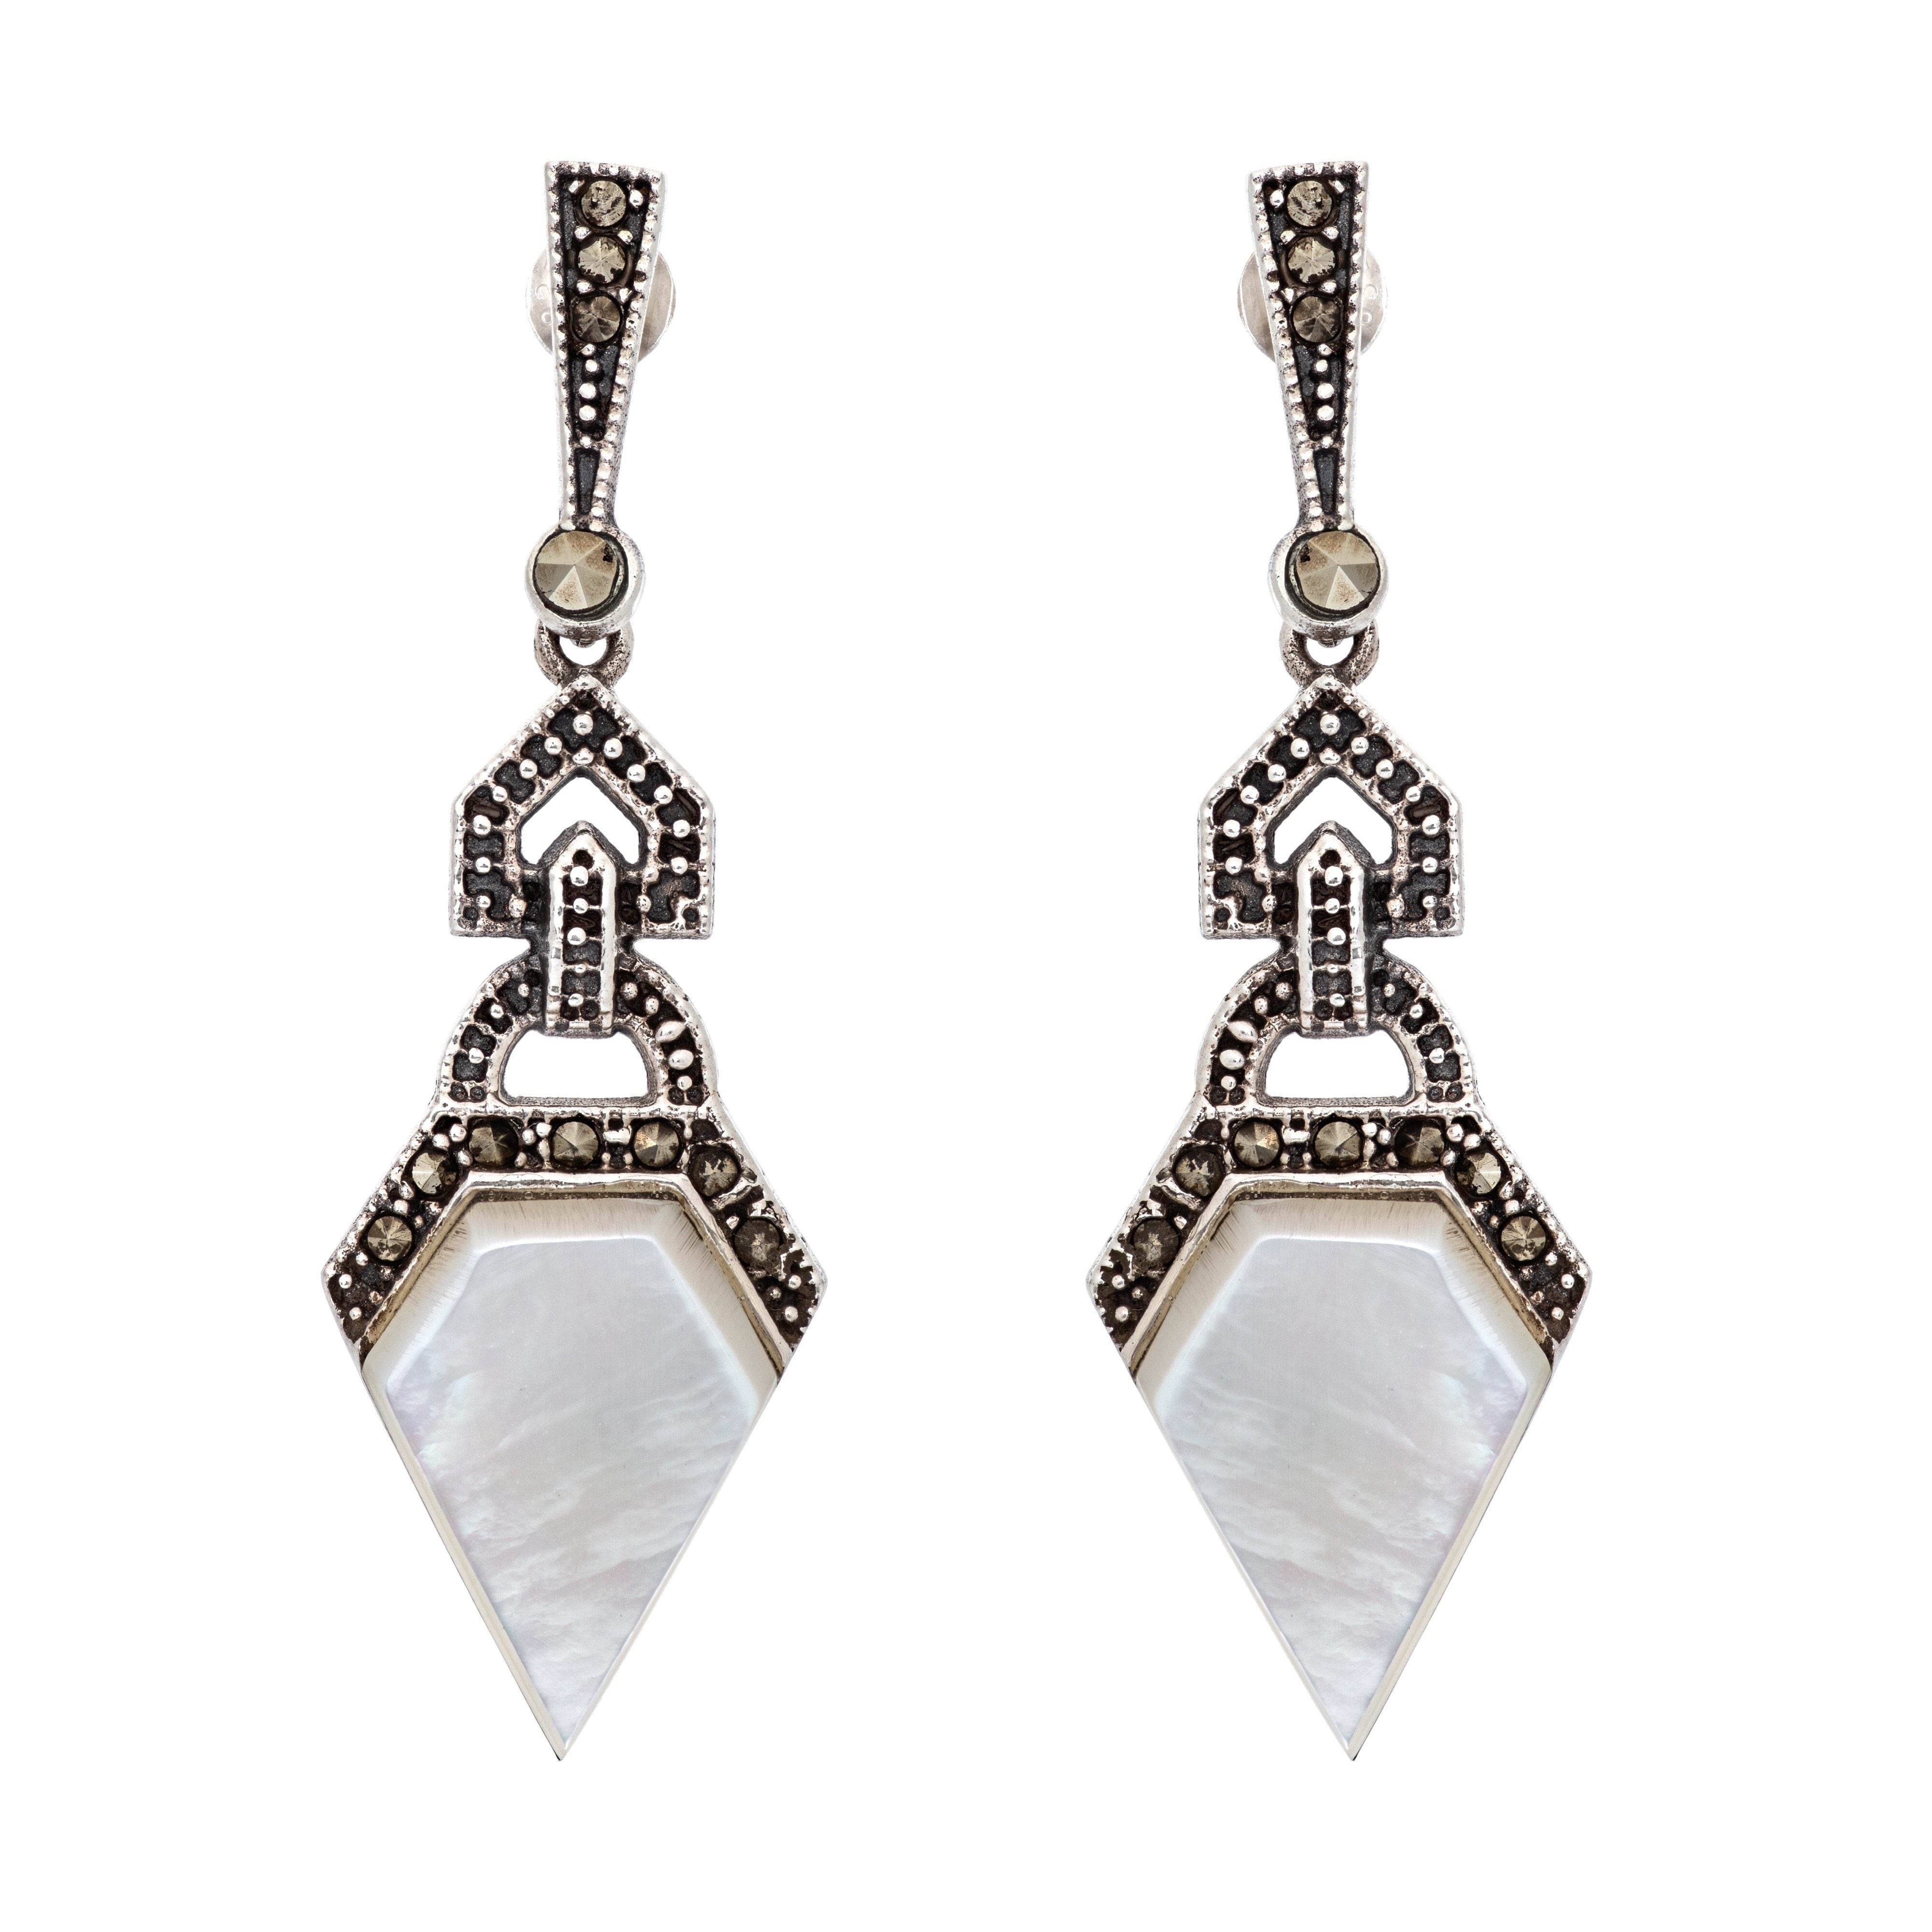 ASTORIA mother of pearl earrings - MadamSiam